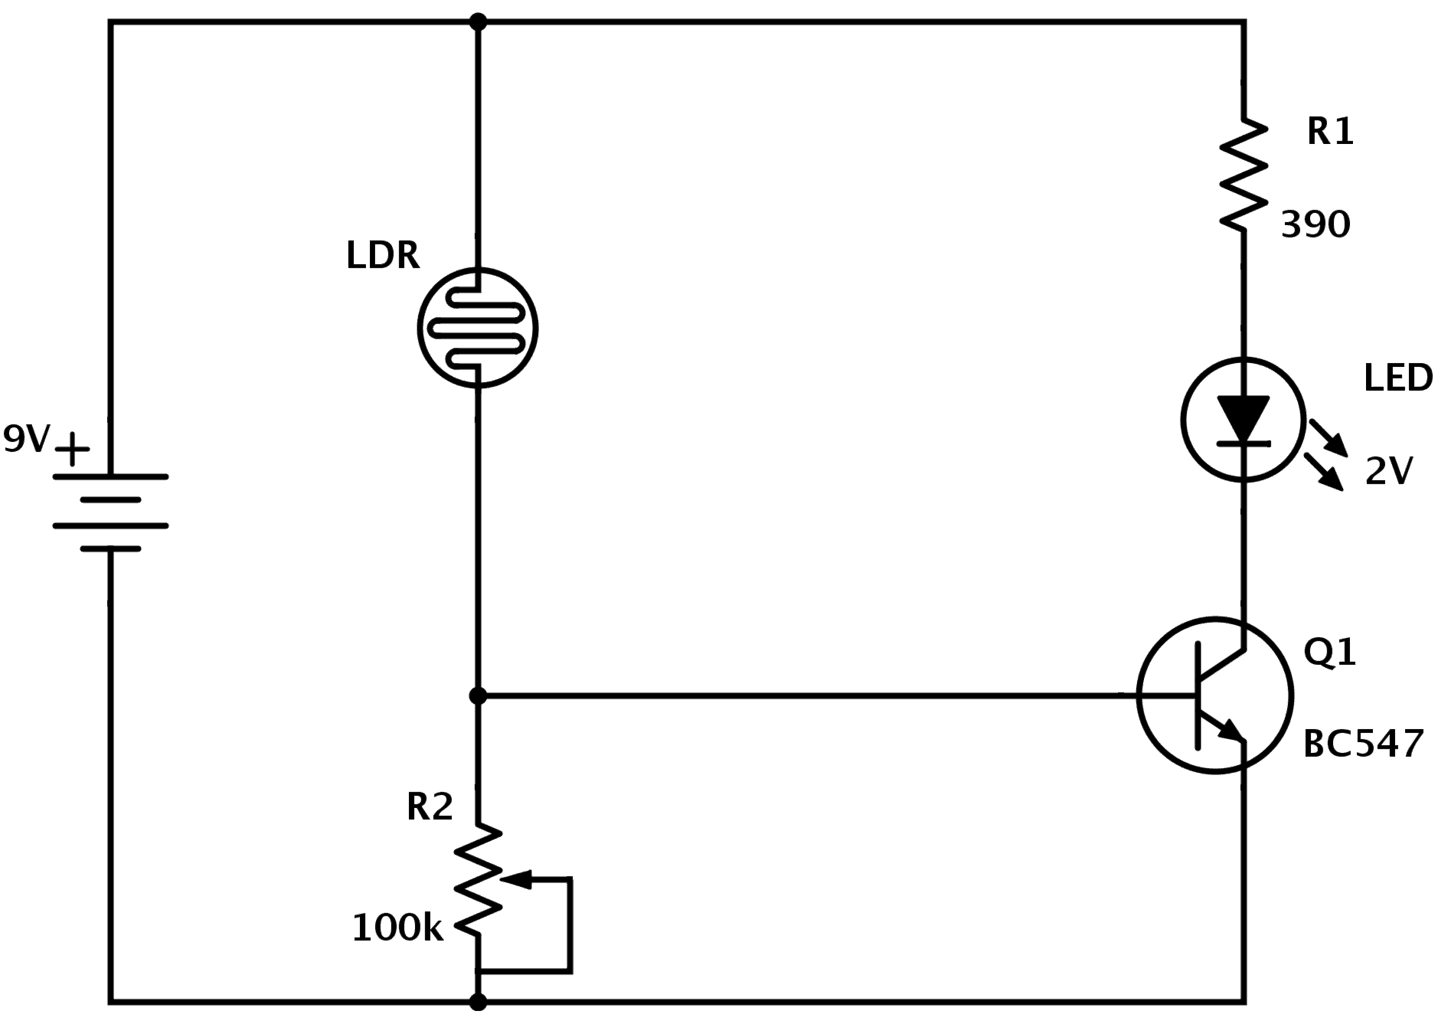 circuit diagram how to read and understand any schematic rh build electronic circuits com